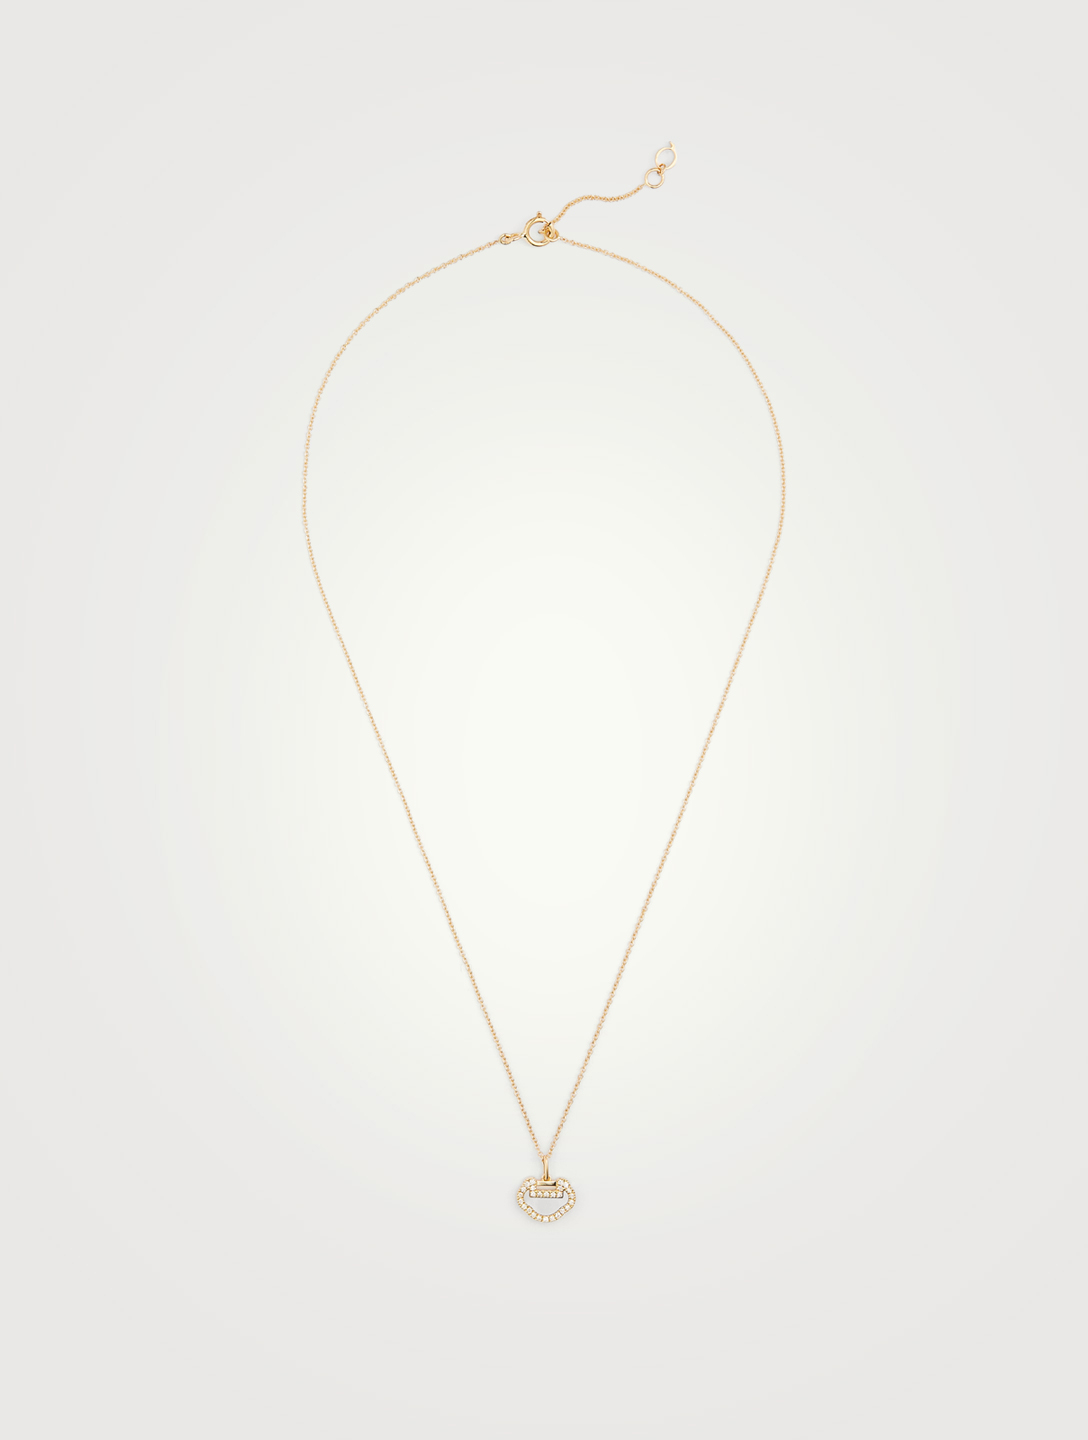 QEELIN Petite Yu Yi 18K Gold Necklace With Diamonds And Mother Of Pearl Women's Gold